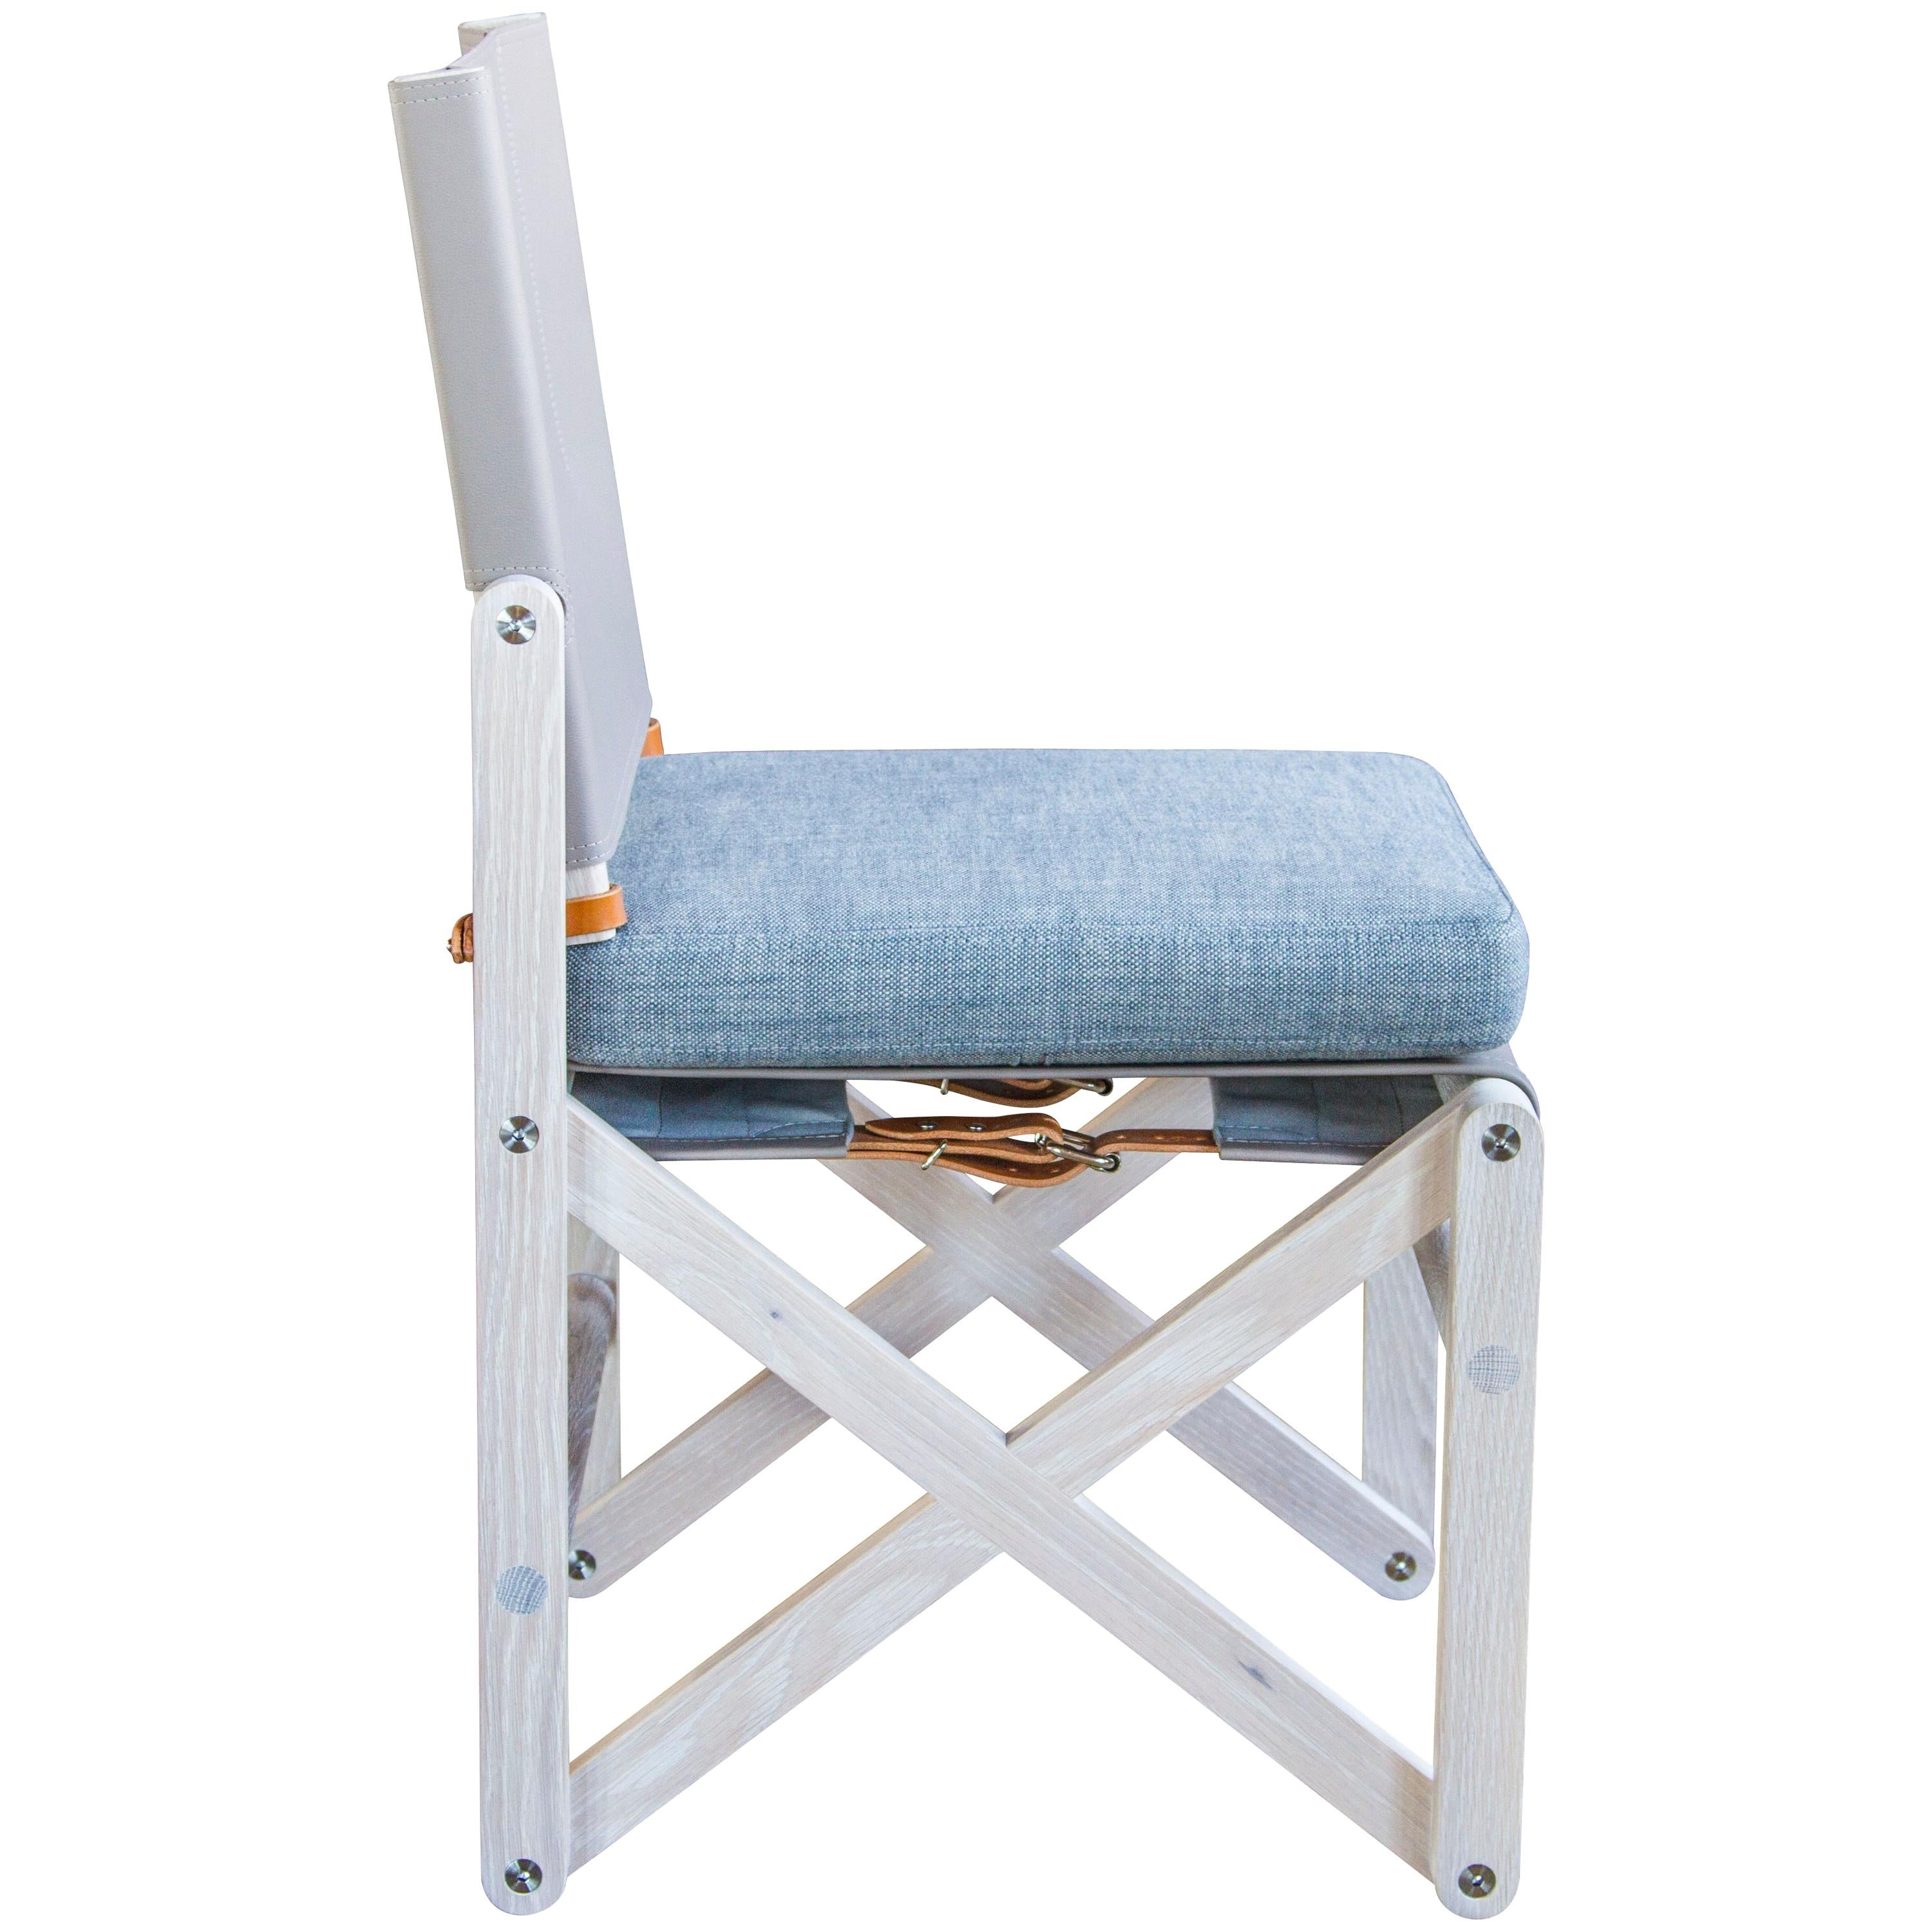 MacLaren Dining Chair 02 in White Oak - handcrafted by Richard Wrightman Design